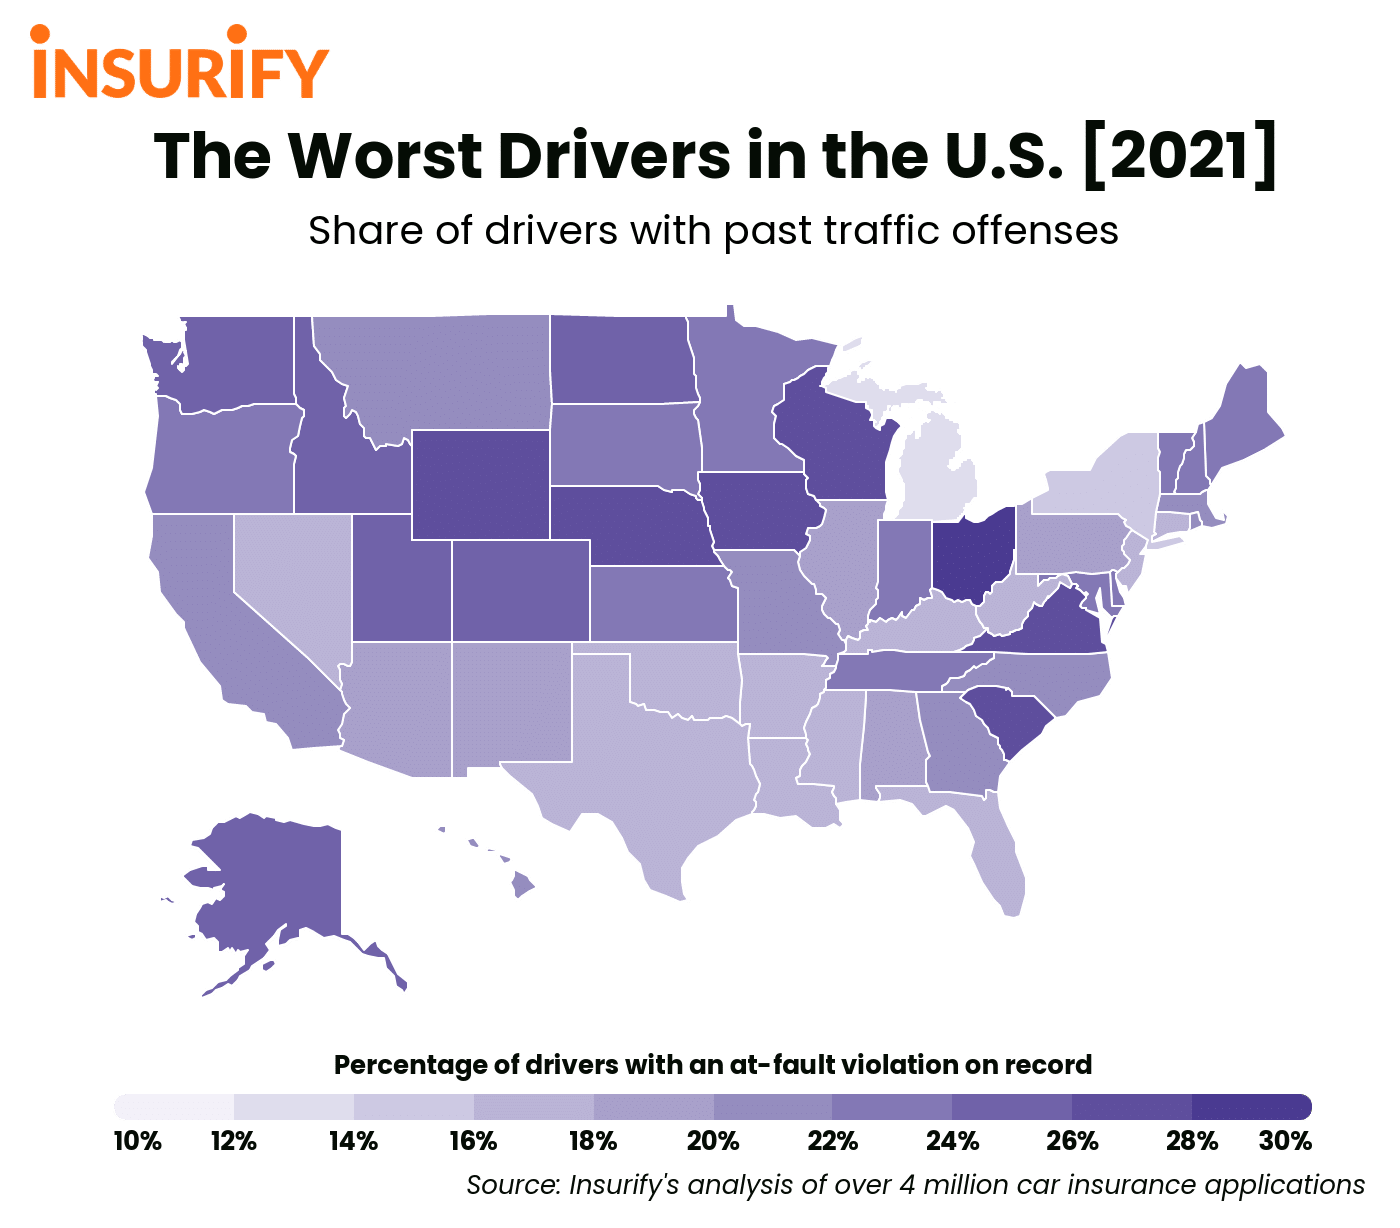 Heat map of the United States showing the traffic violation rates by state.